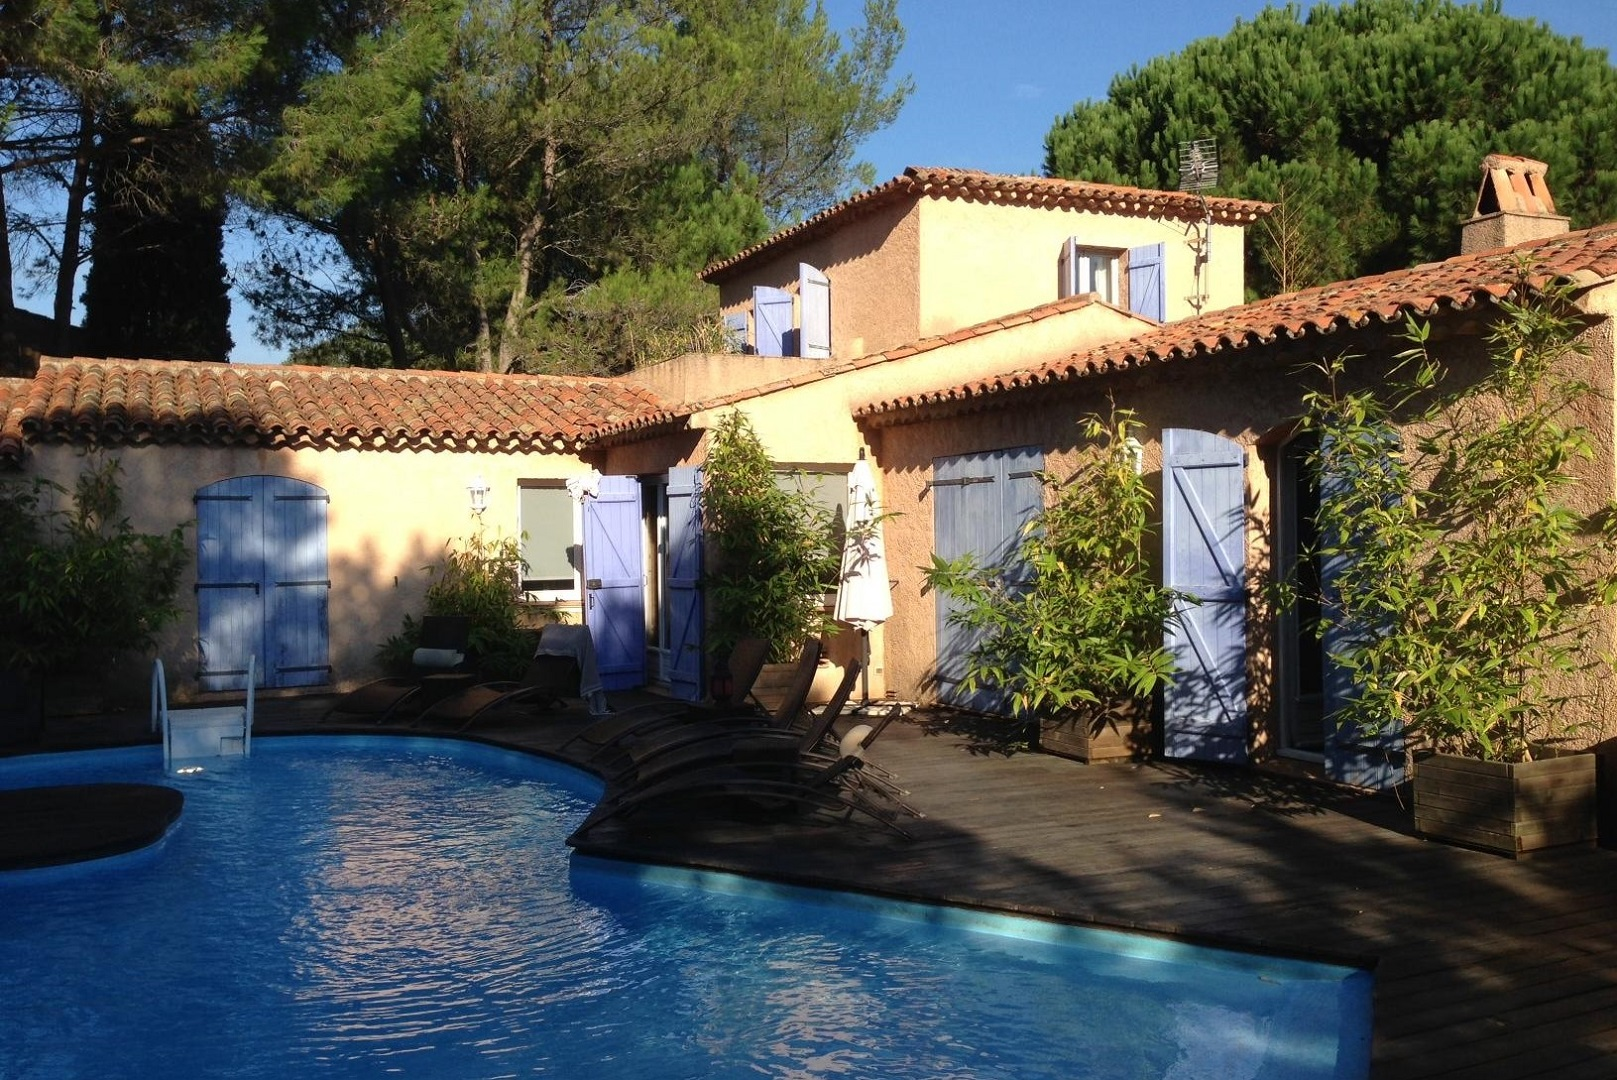 A house with a pool in front of a building at Le Mas d'Olivier.